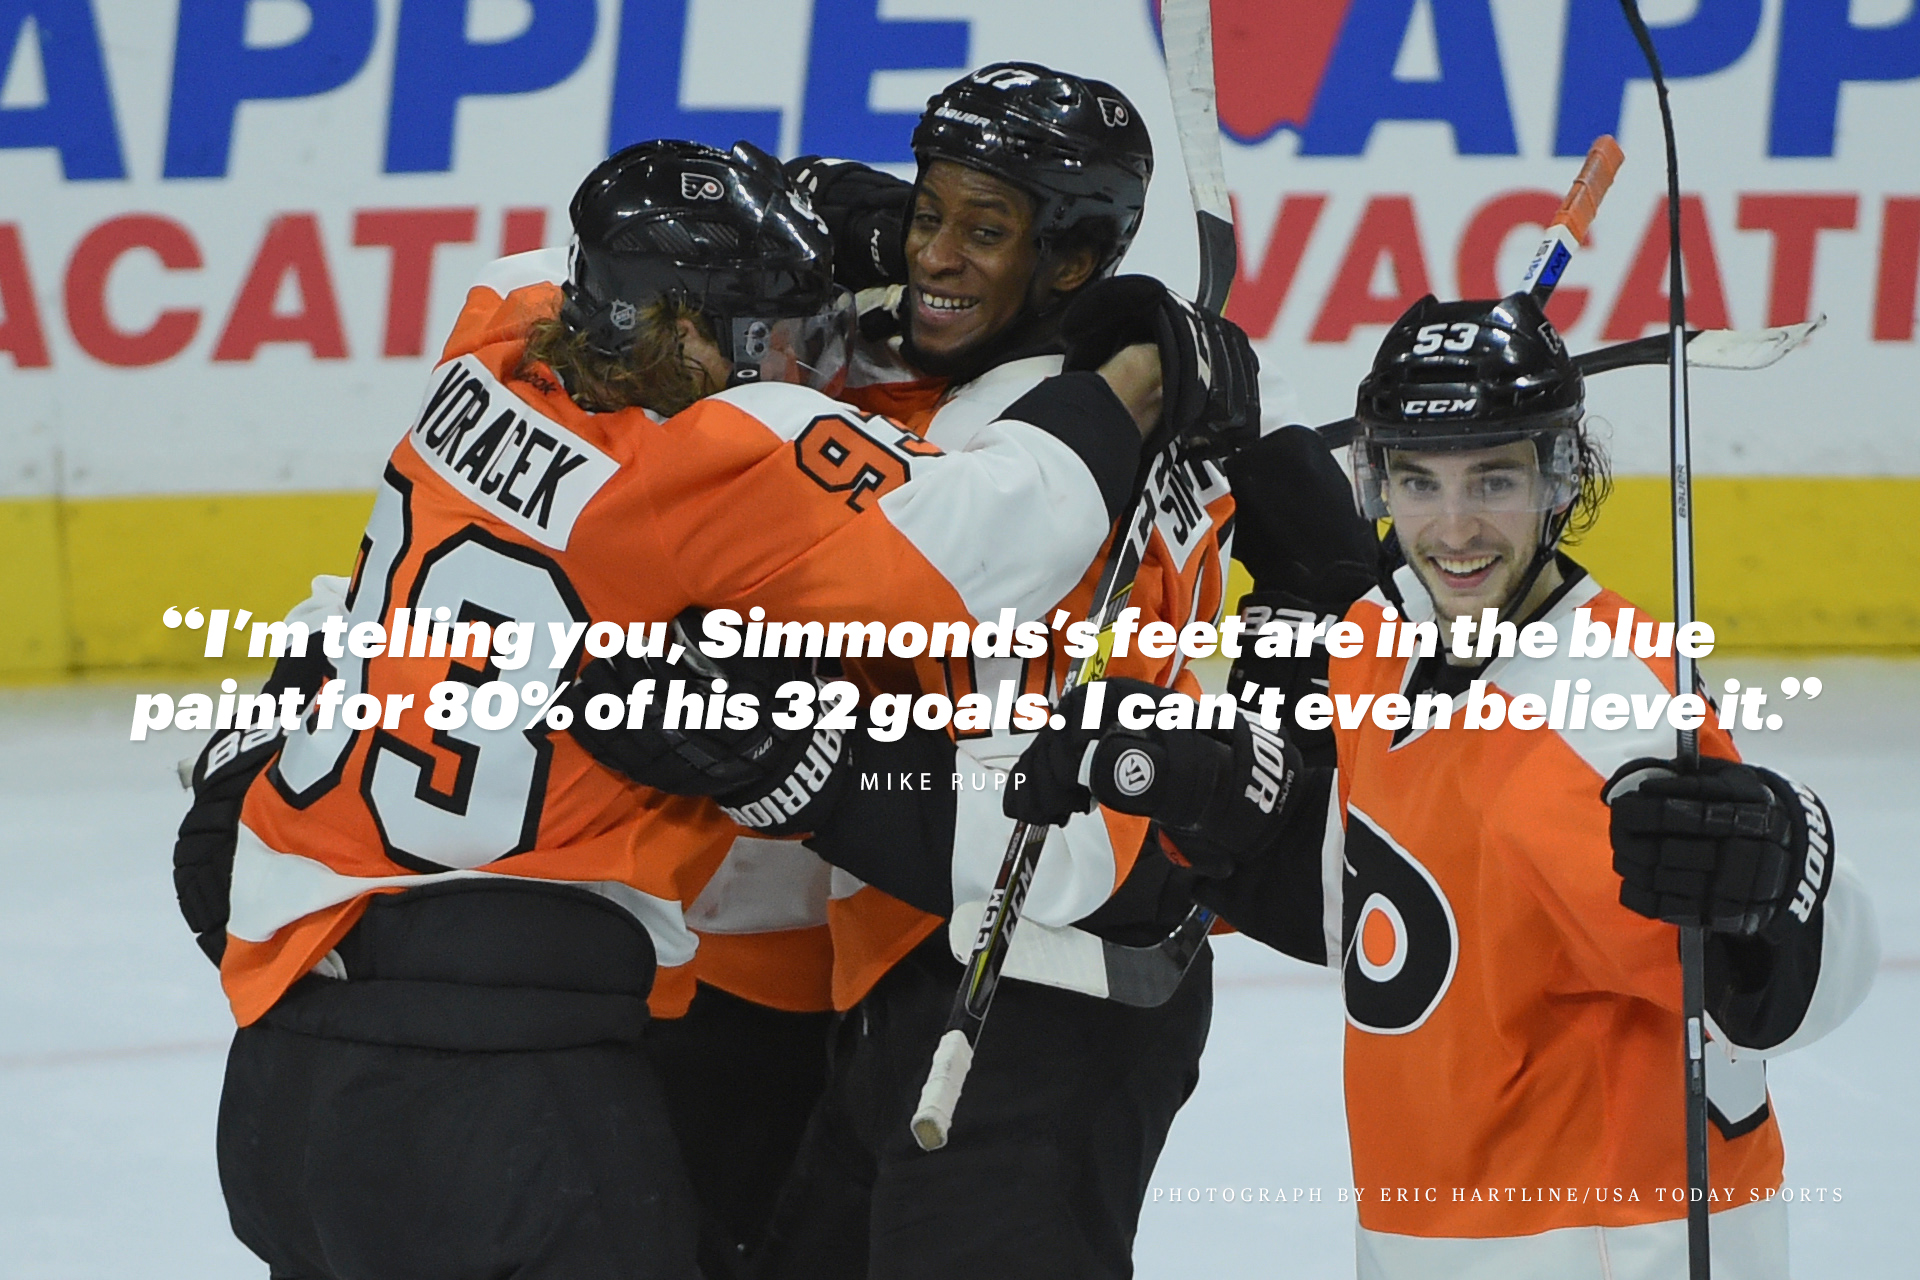 Simmonds Grind Pull